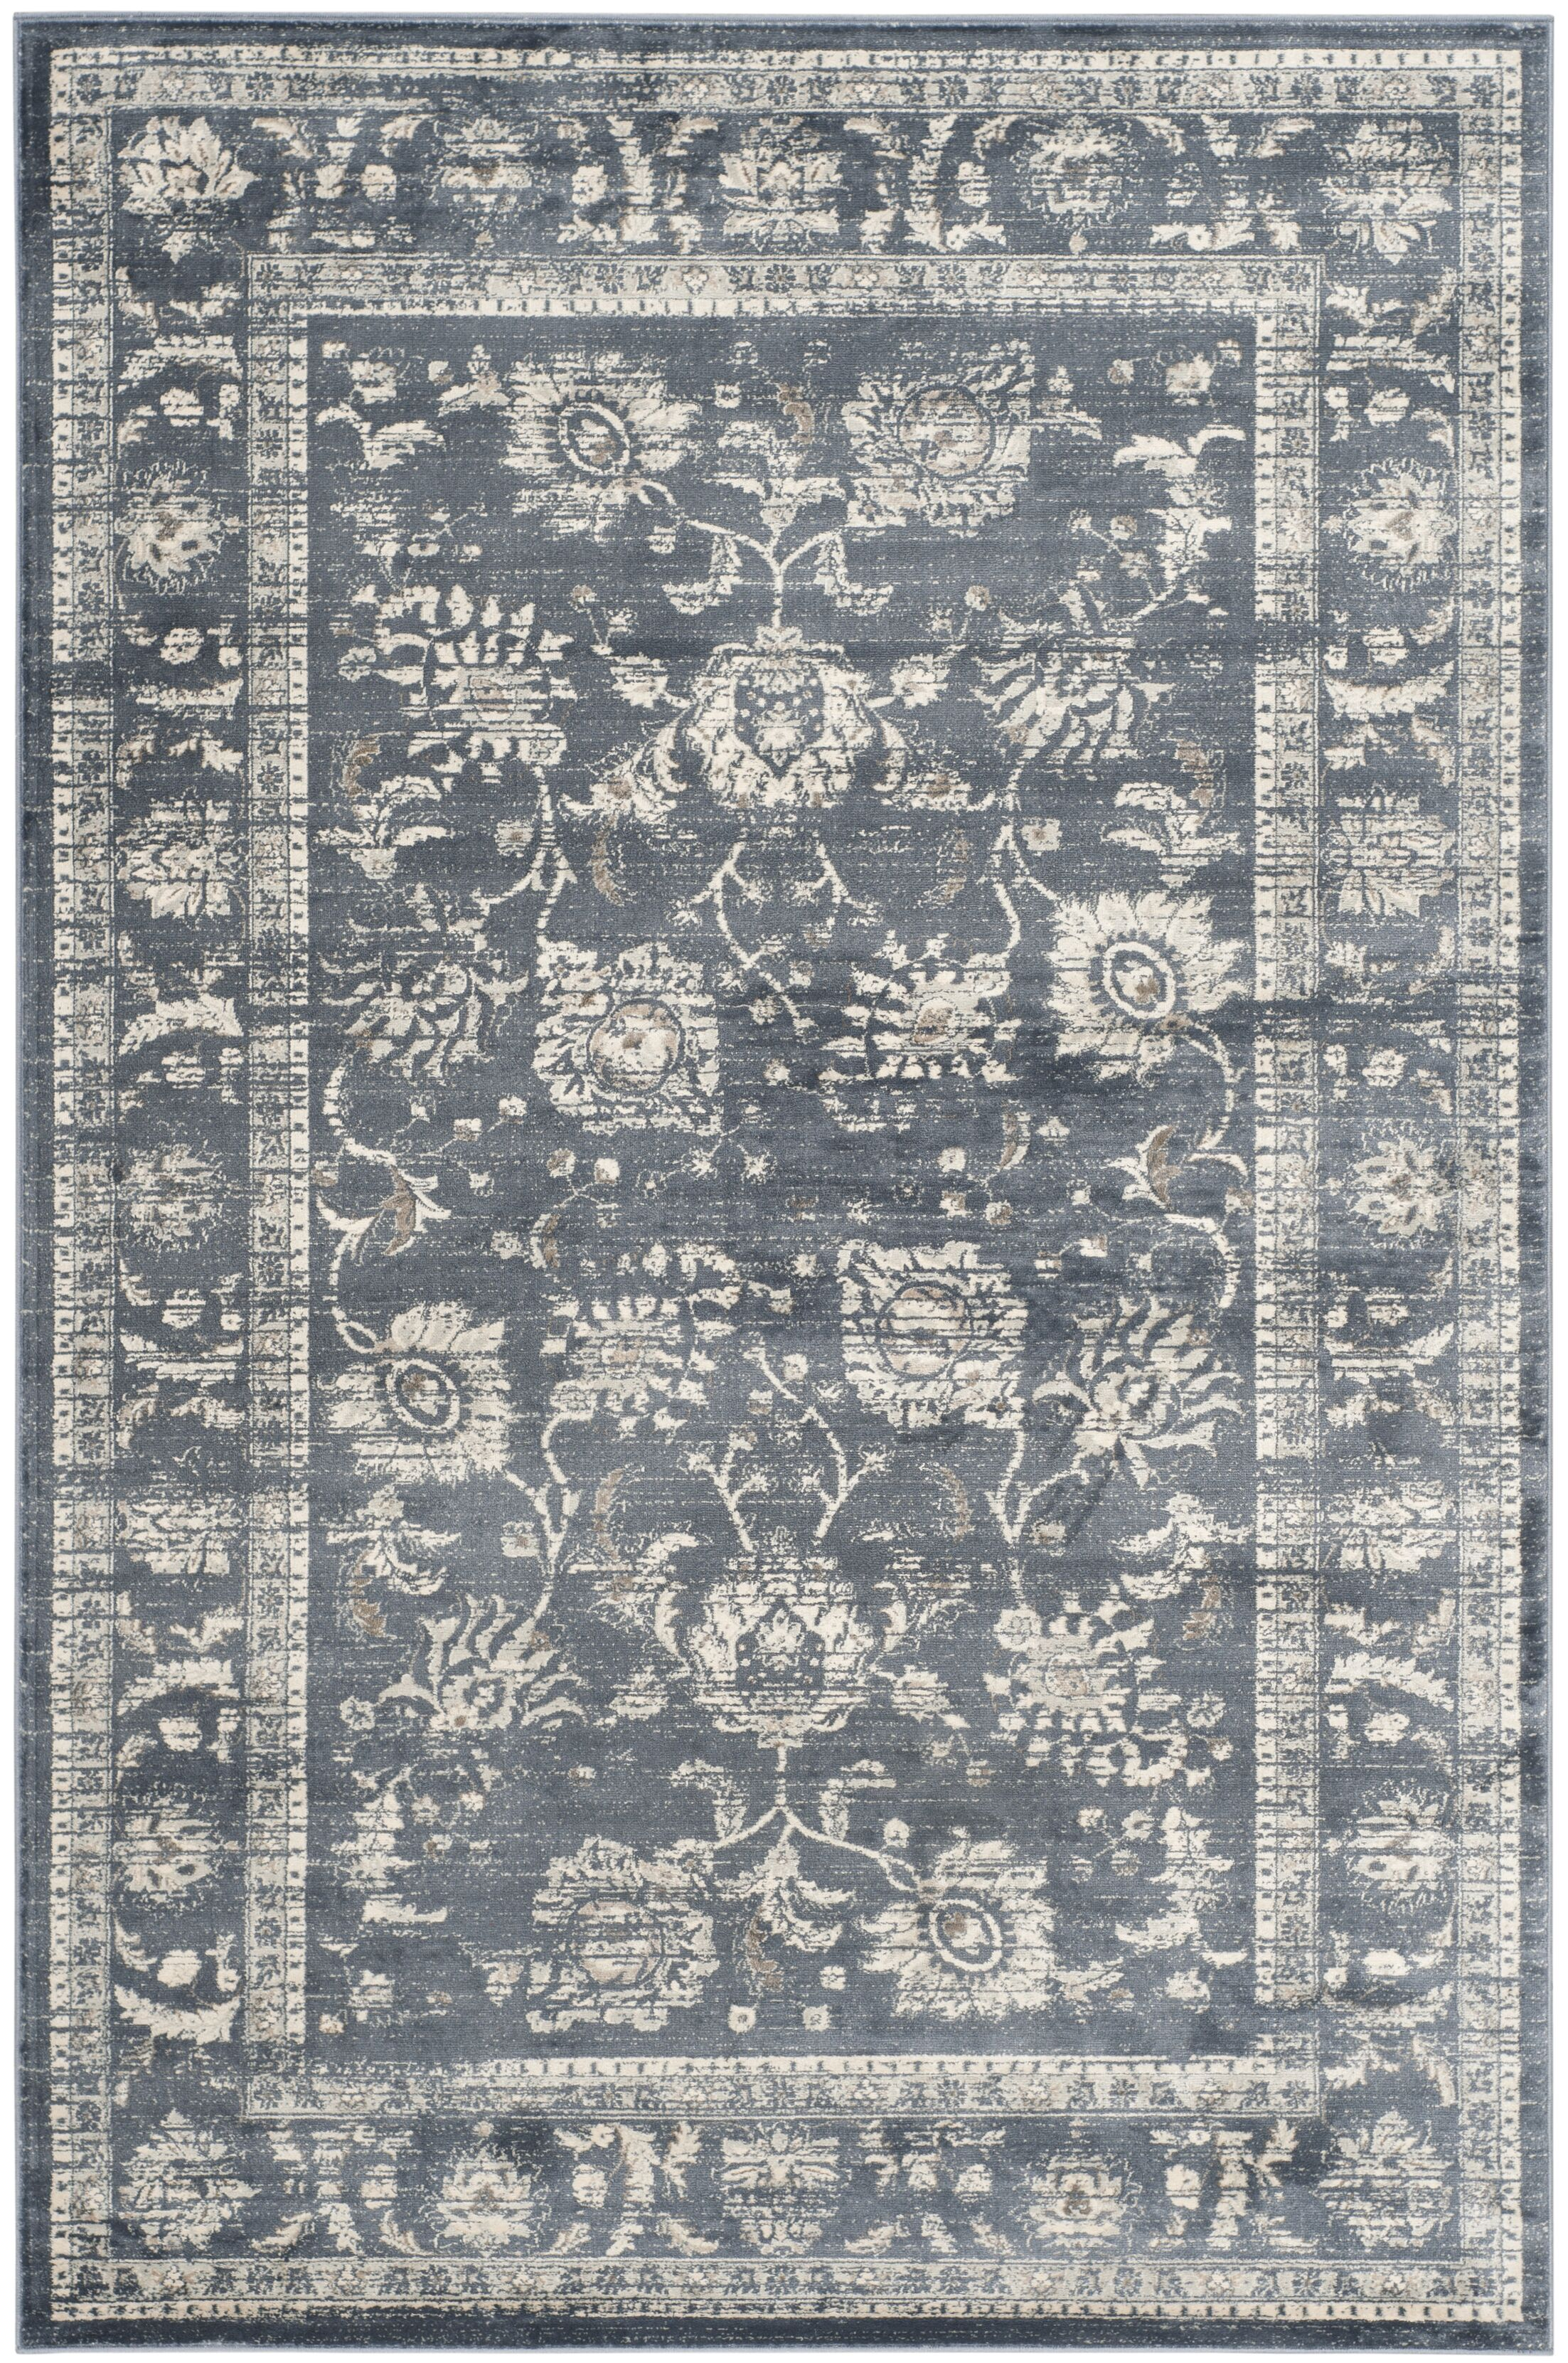 Bainsby Dark Grey / Cream Area Rug Rug Size: Rectangle 9' x 12'